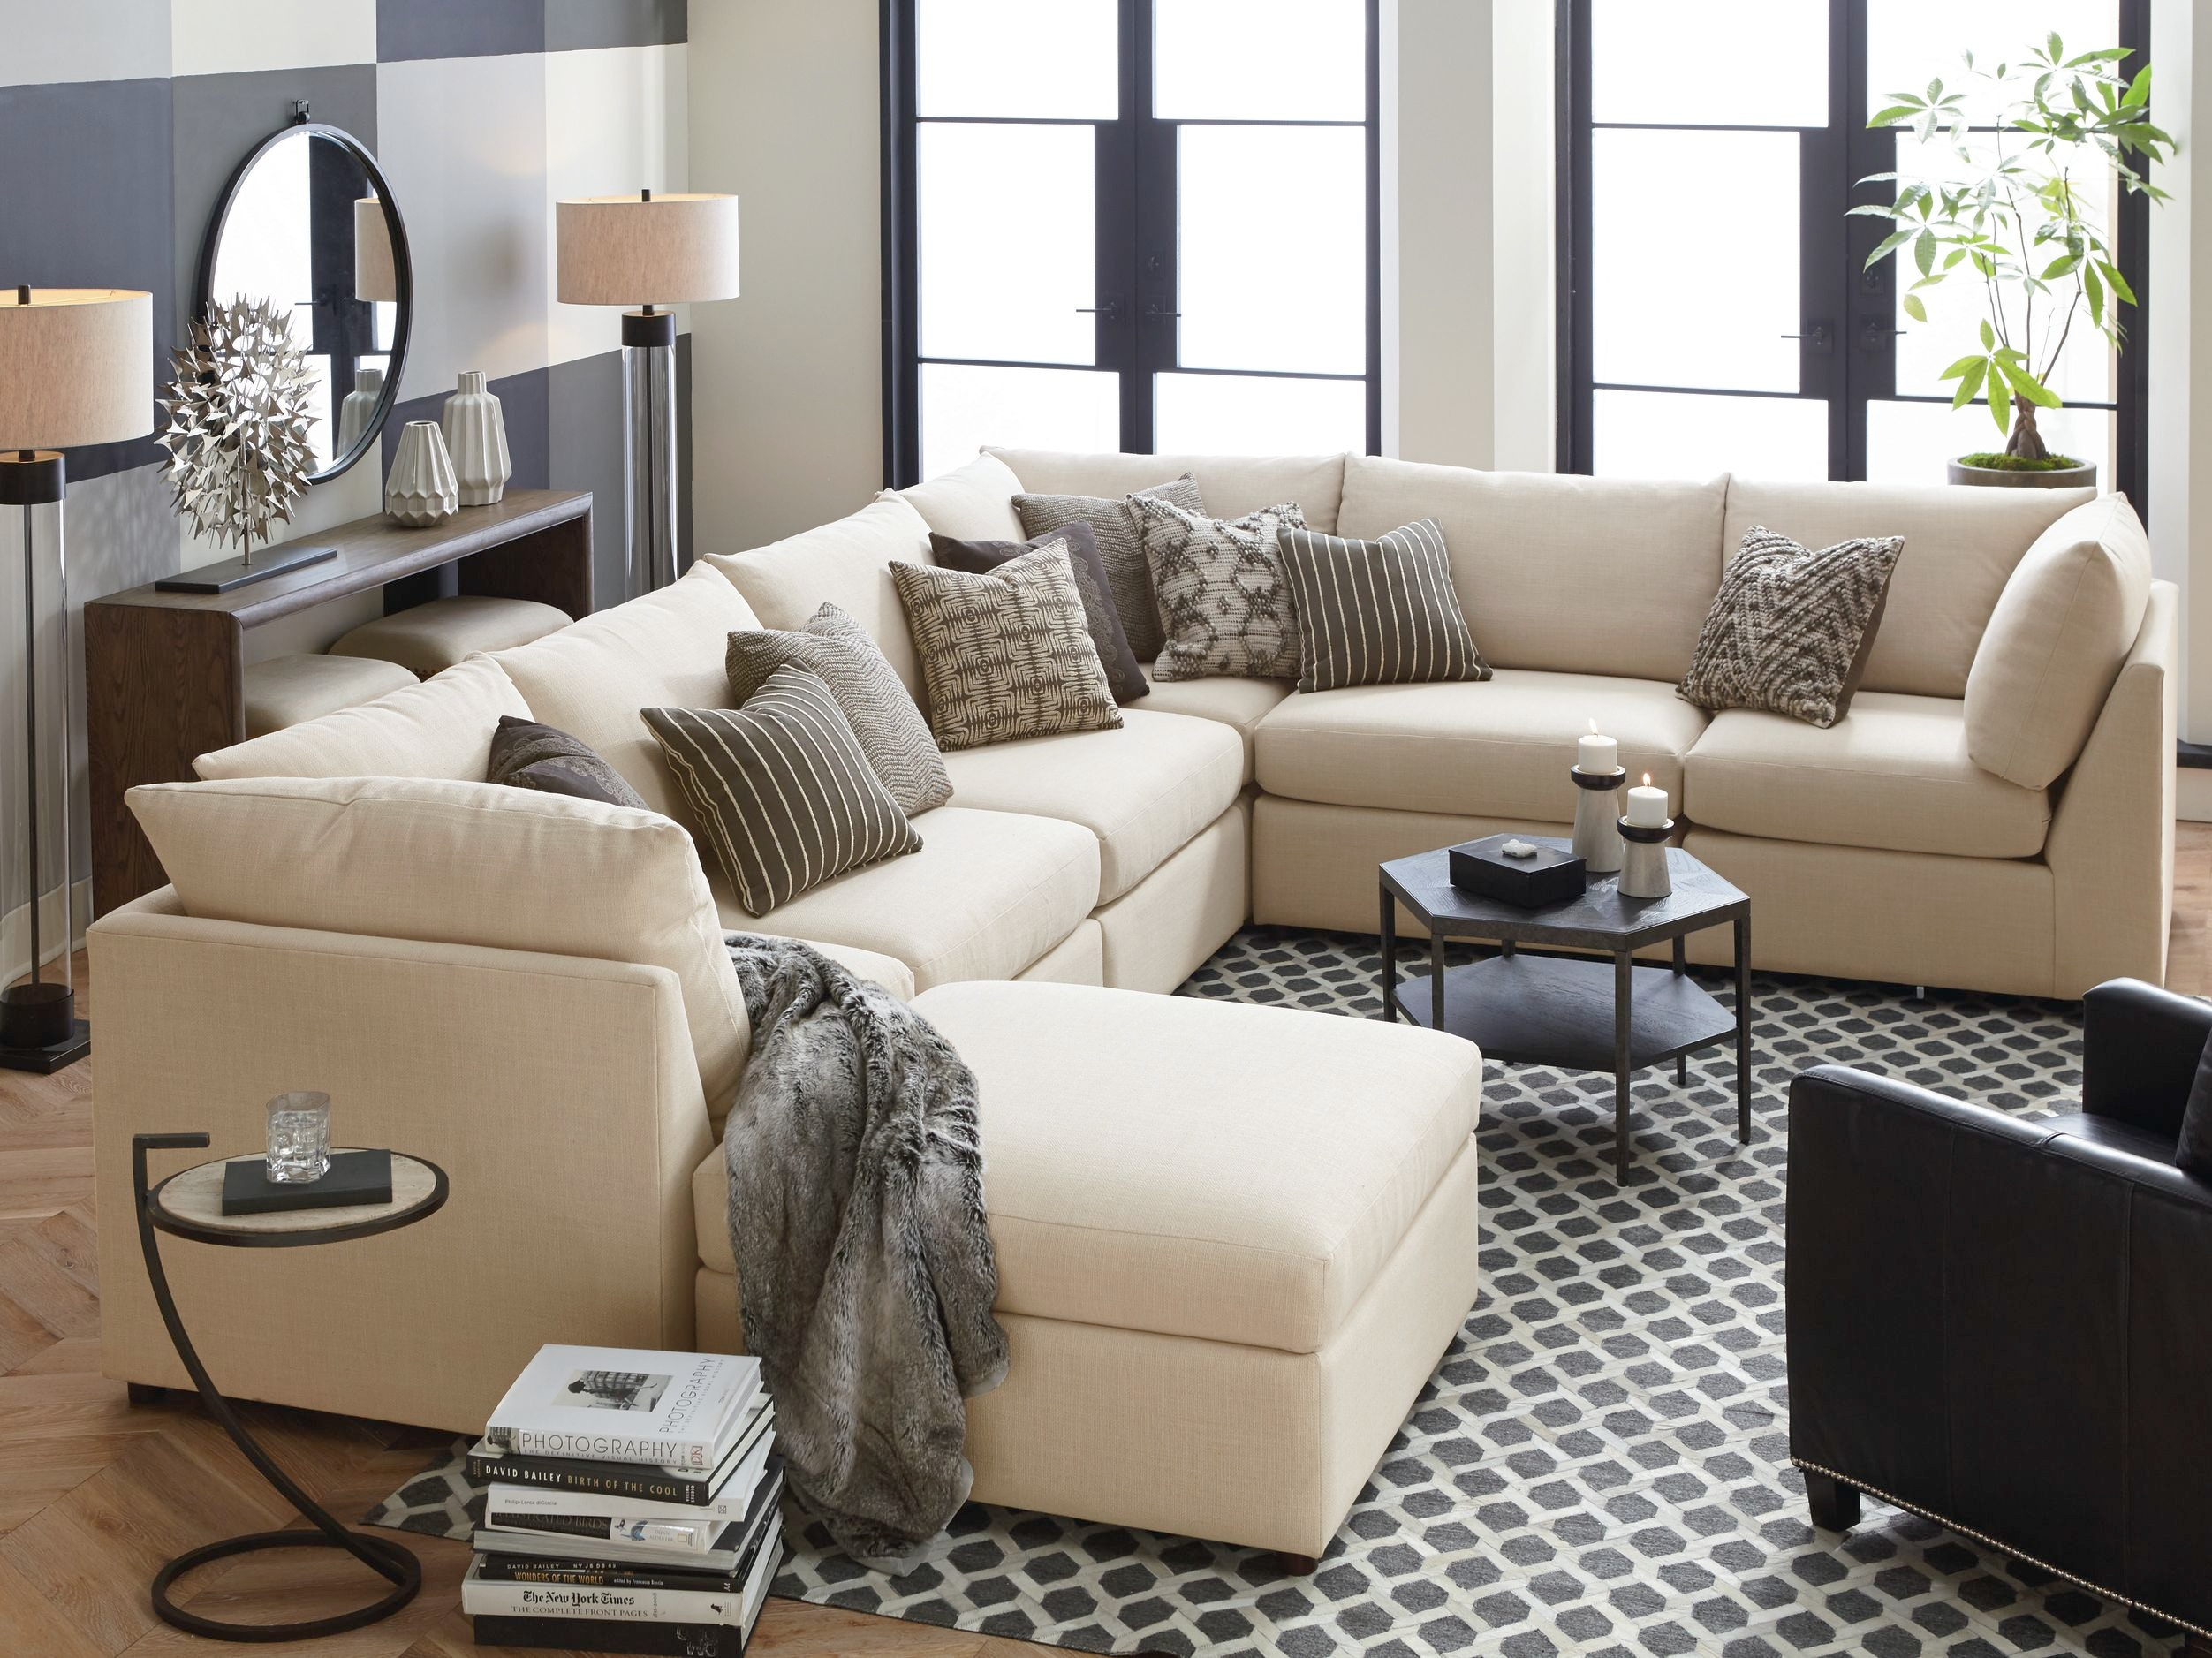 Bassett Furniture Furniture Catalog. Sectional With Pillows And Ottoman Bassett  Furniture Catalog A